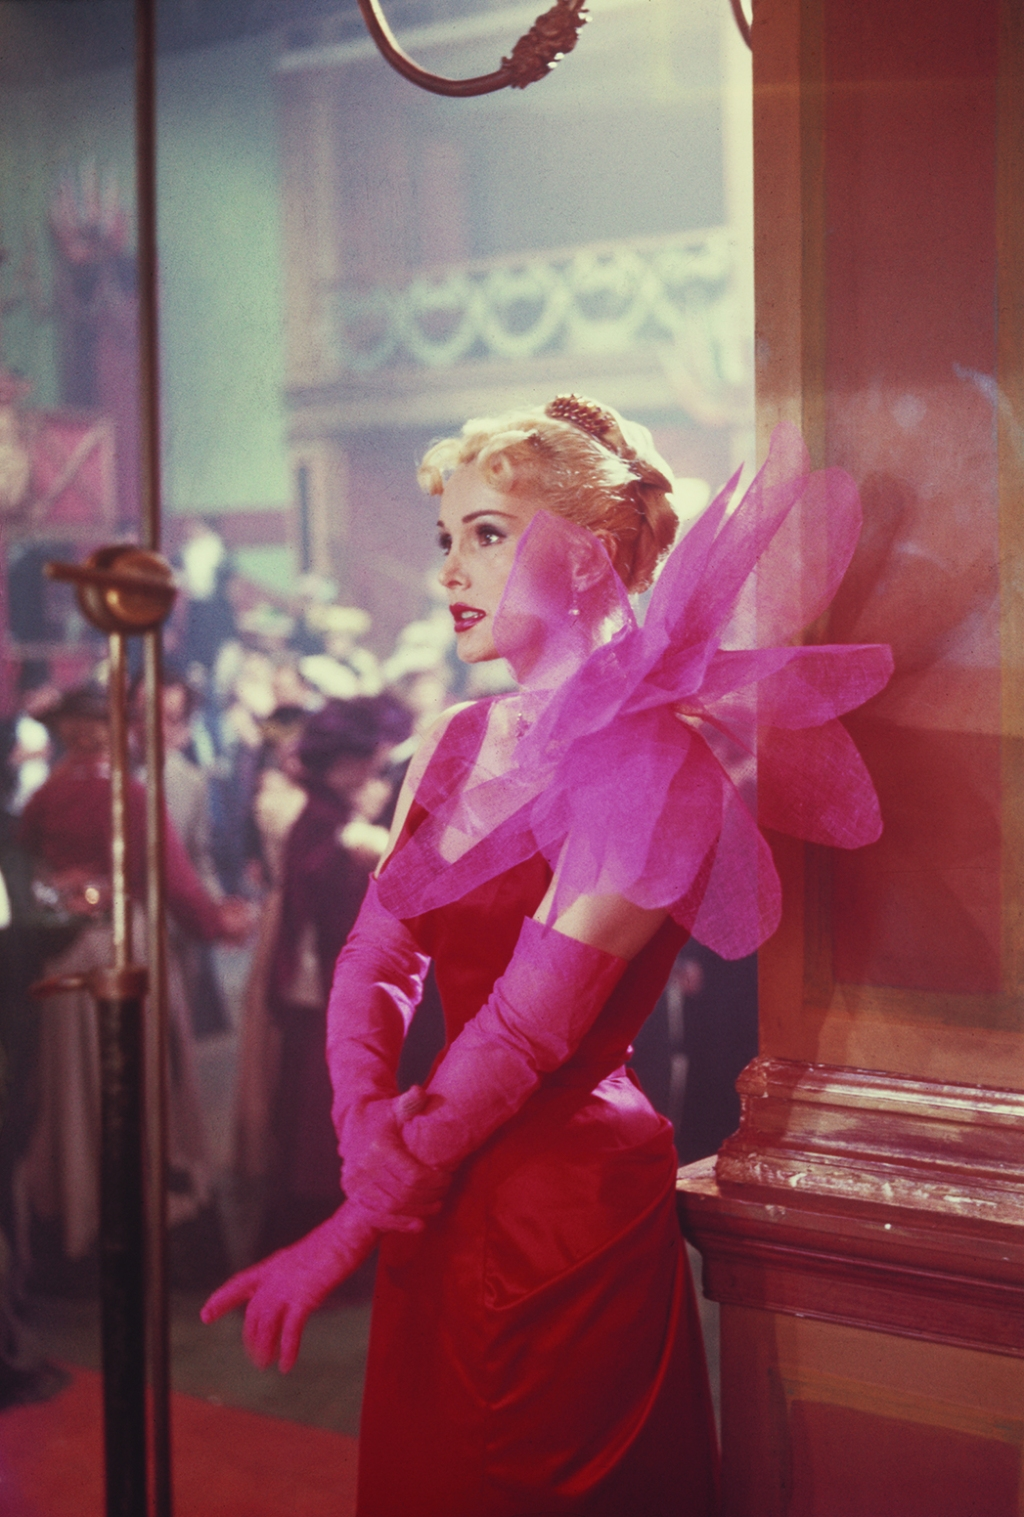 Zsa Zsa Gabor in 1952's Moulin Rouge.